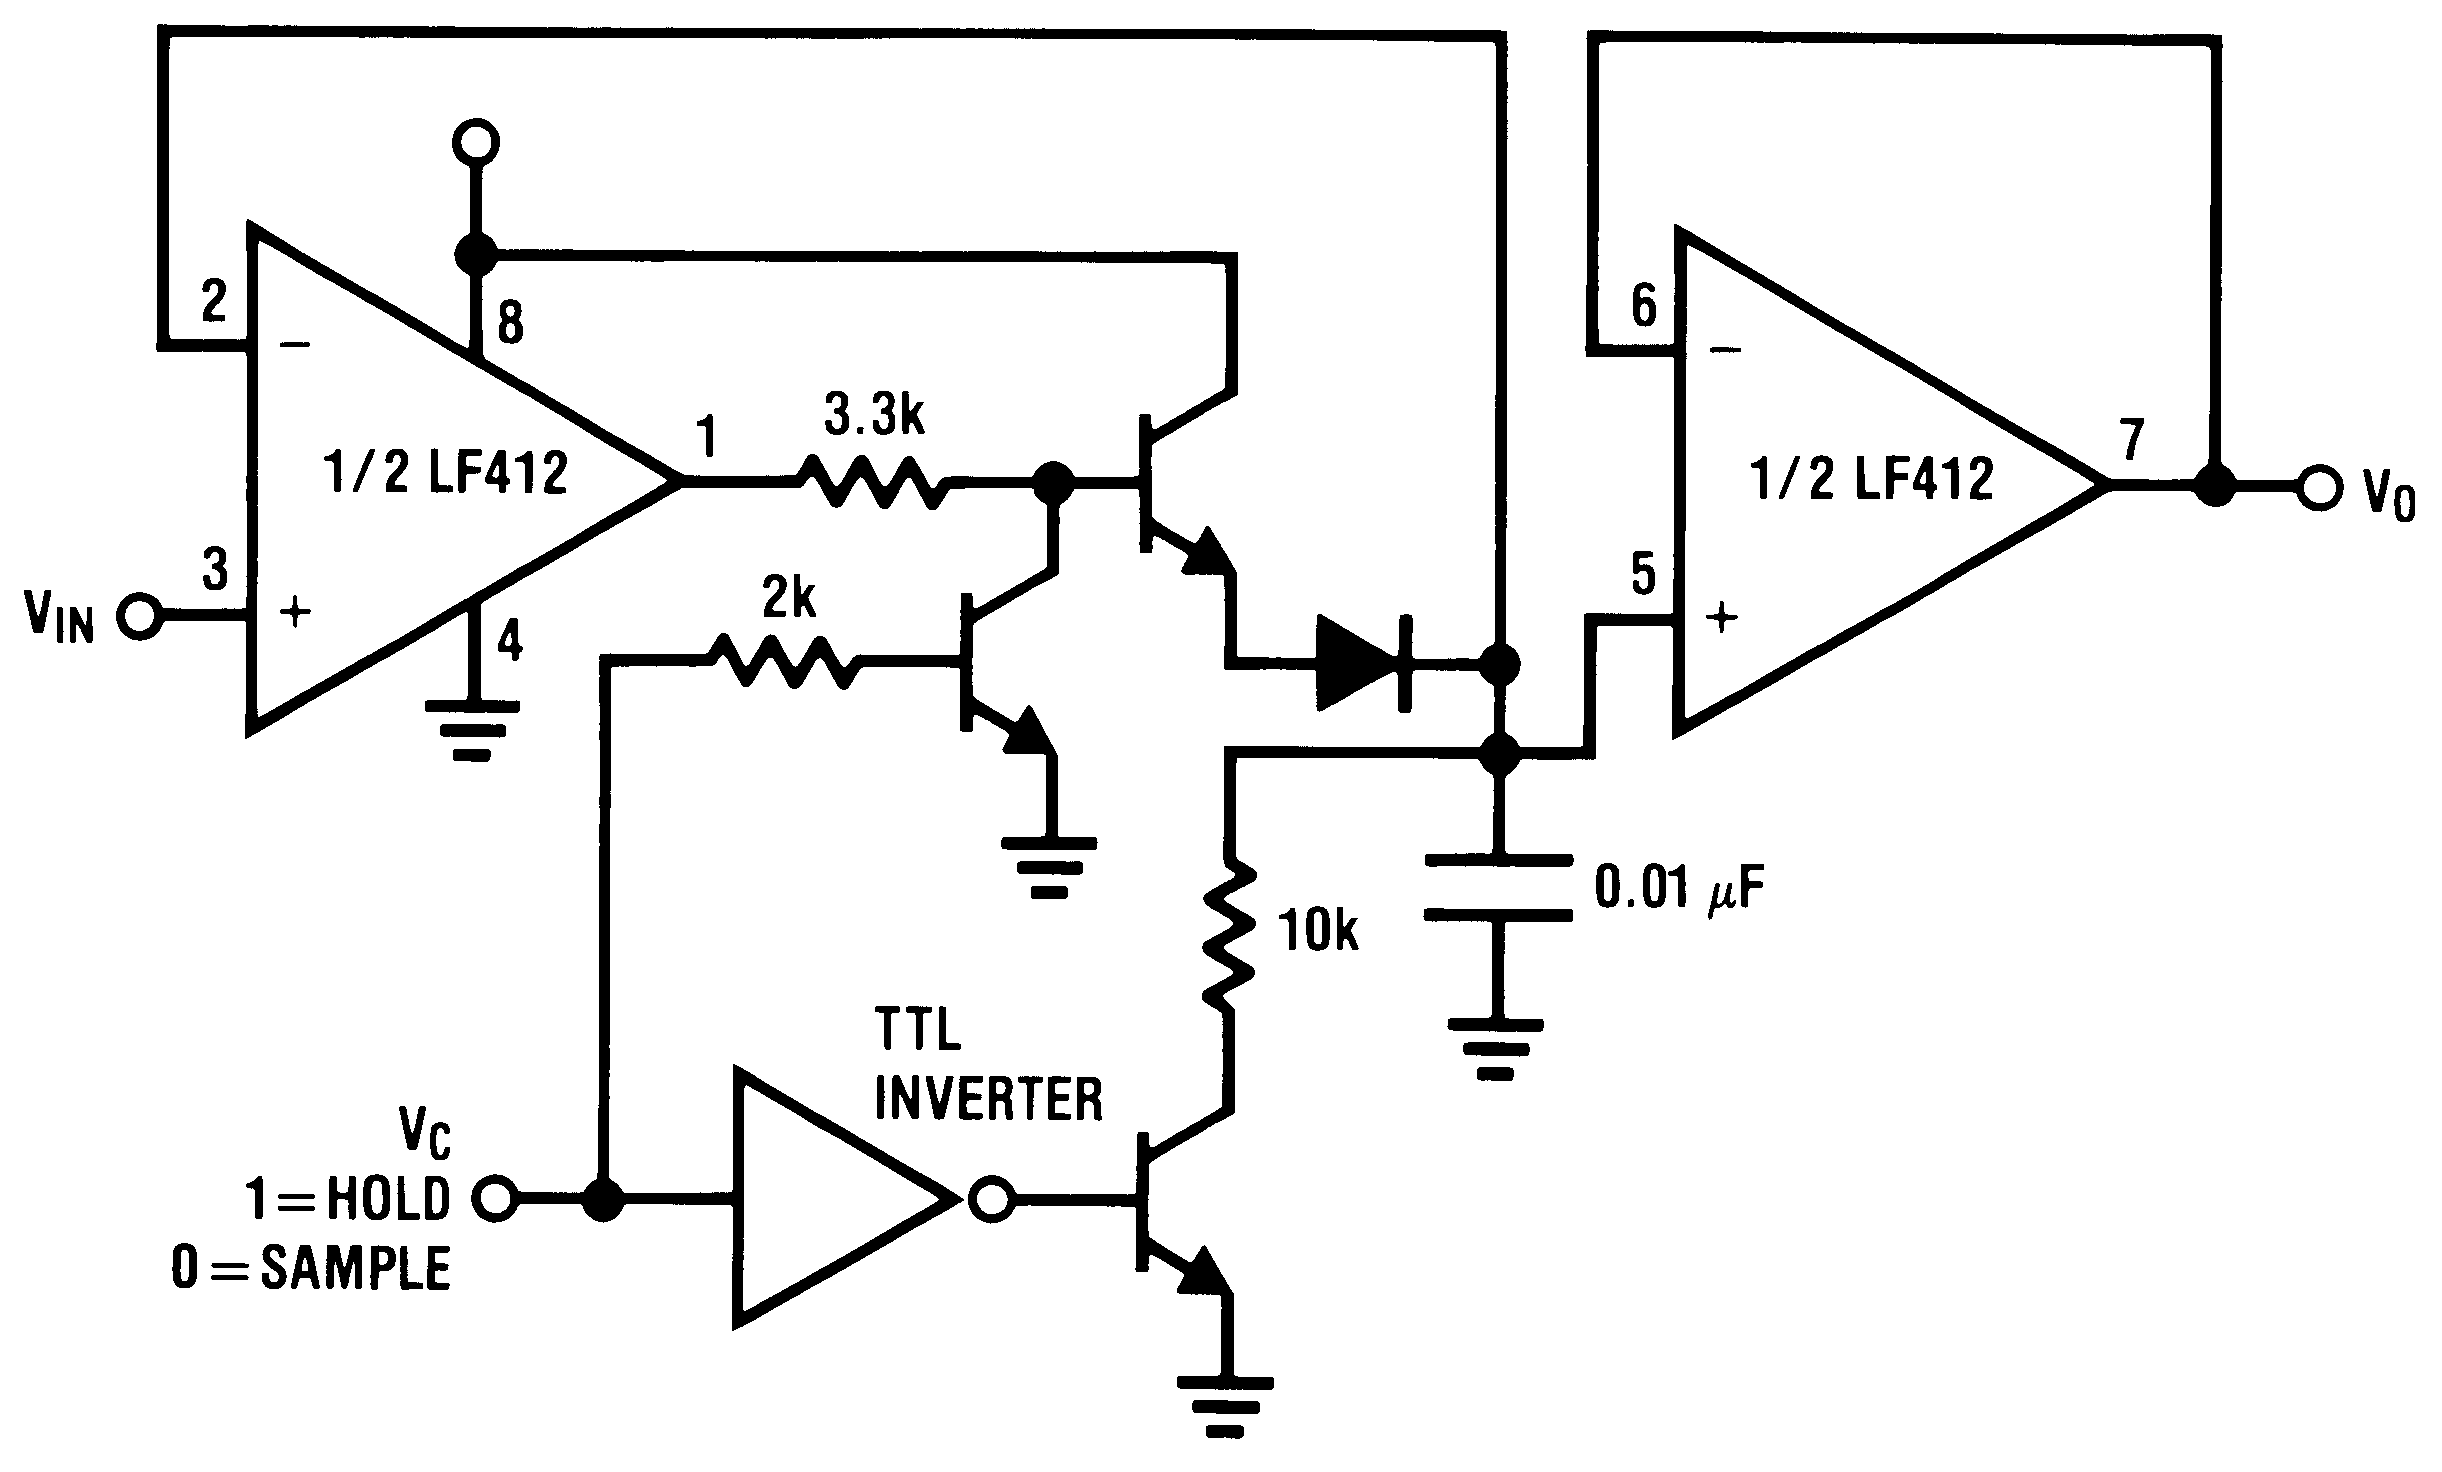 Lf412 N Single Supply Op Amp Design Sample And Hold